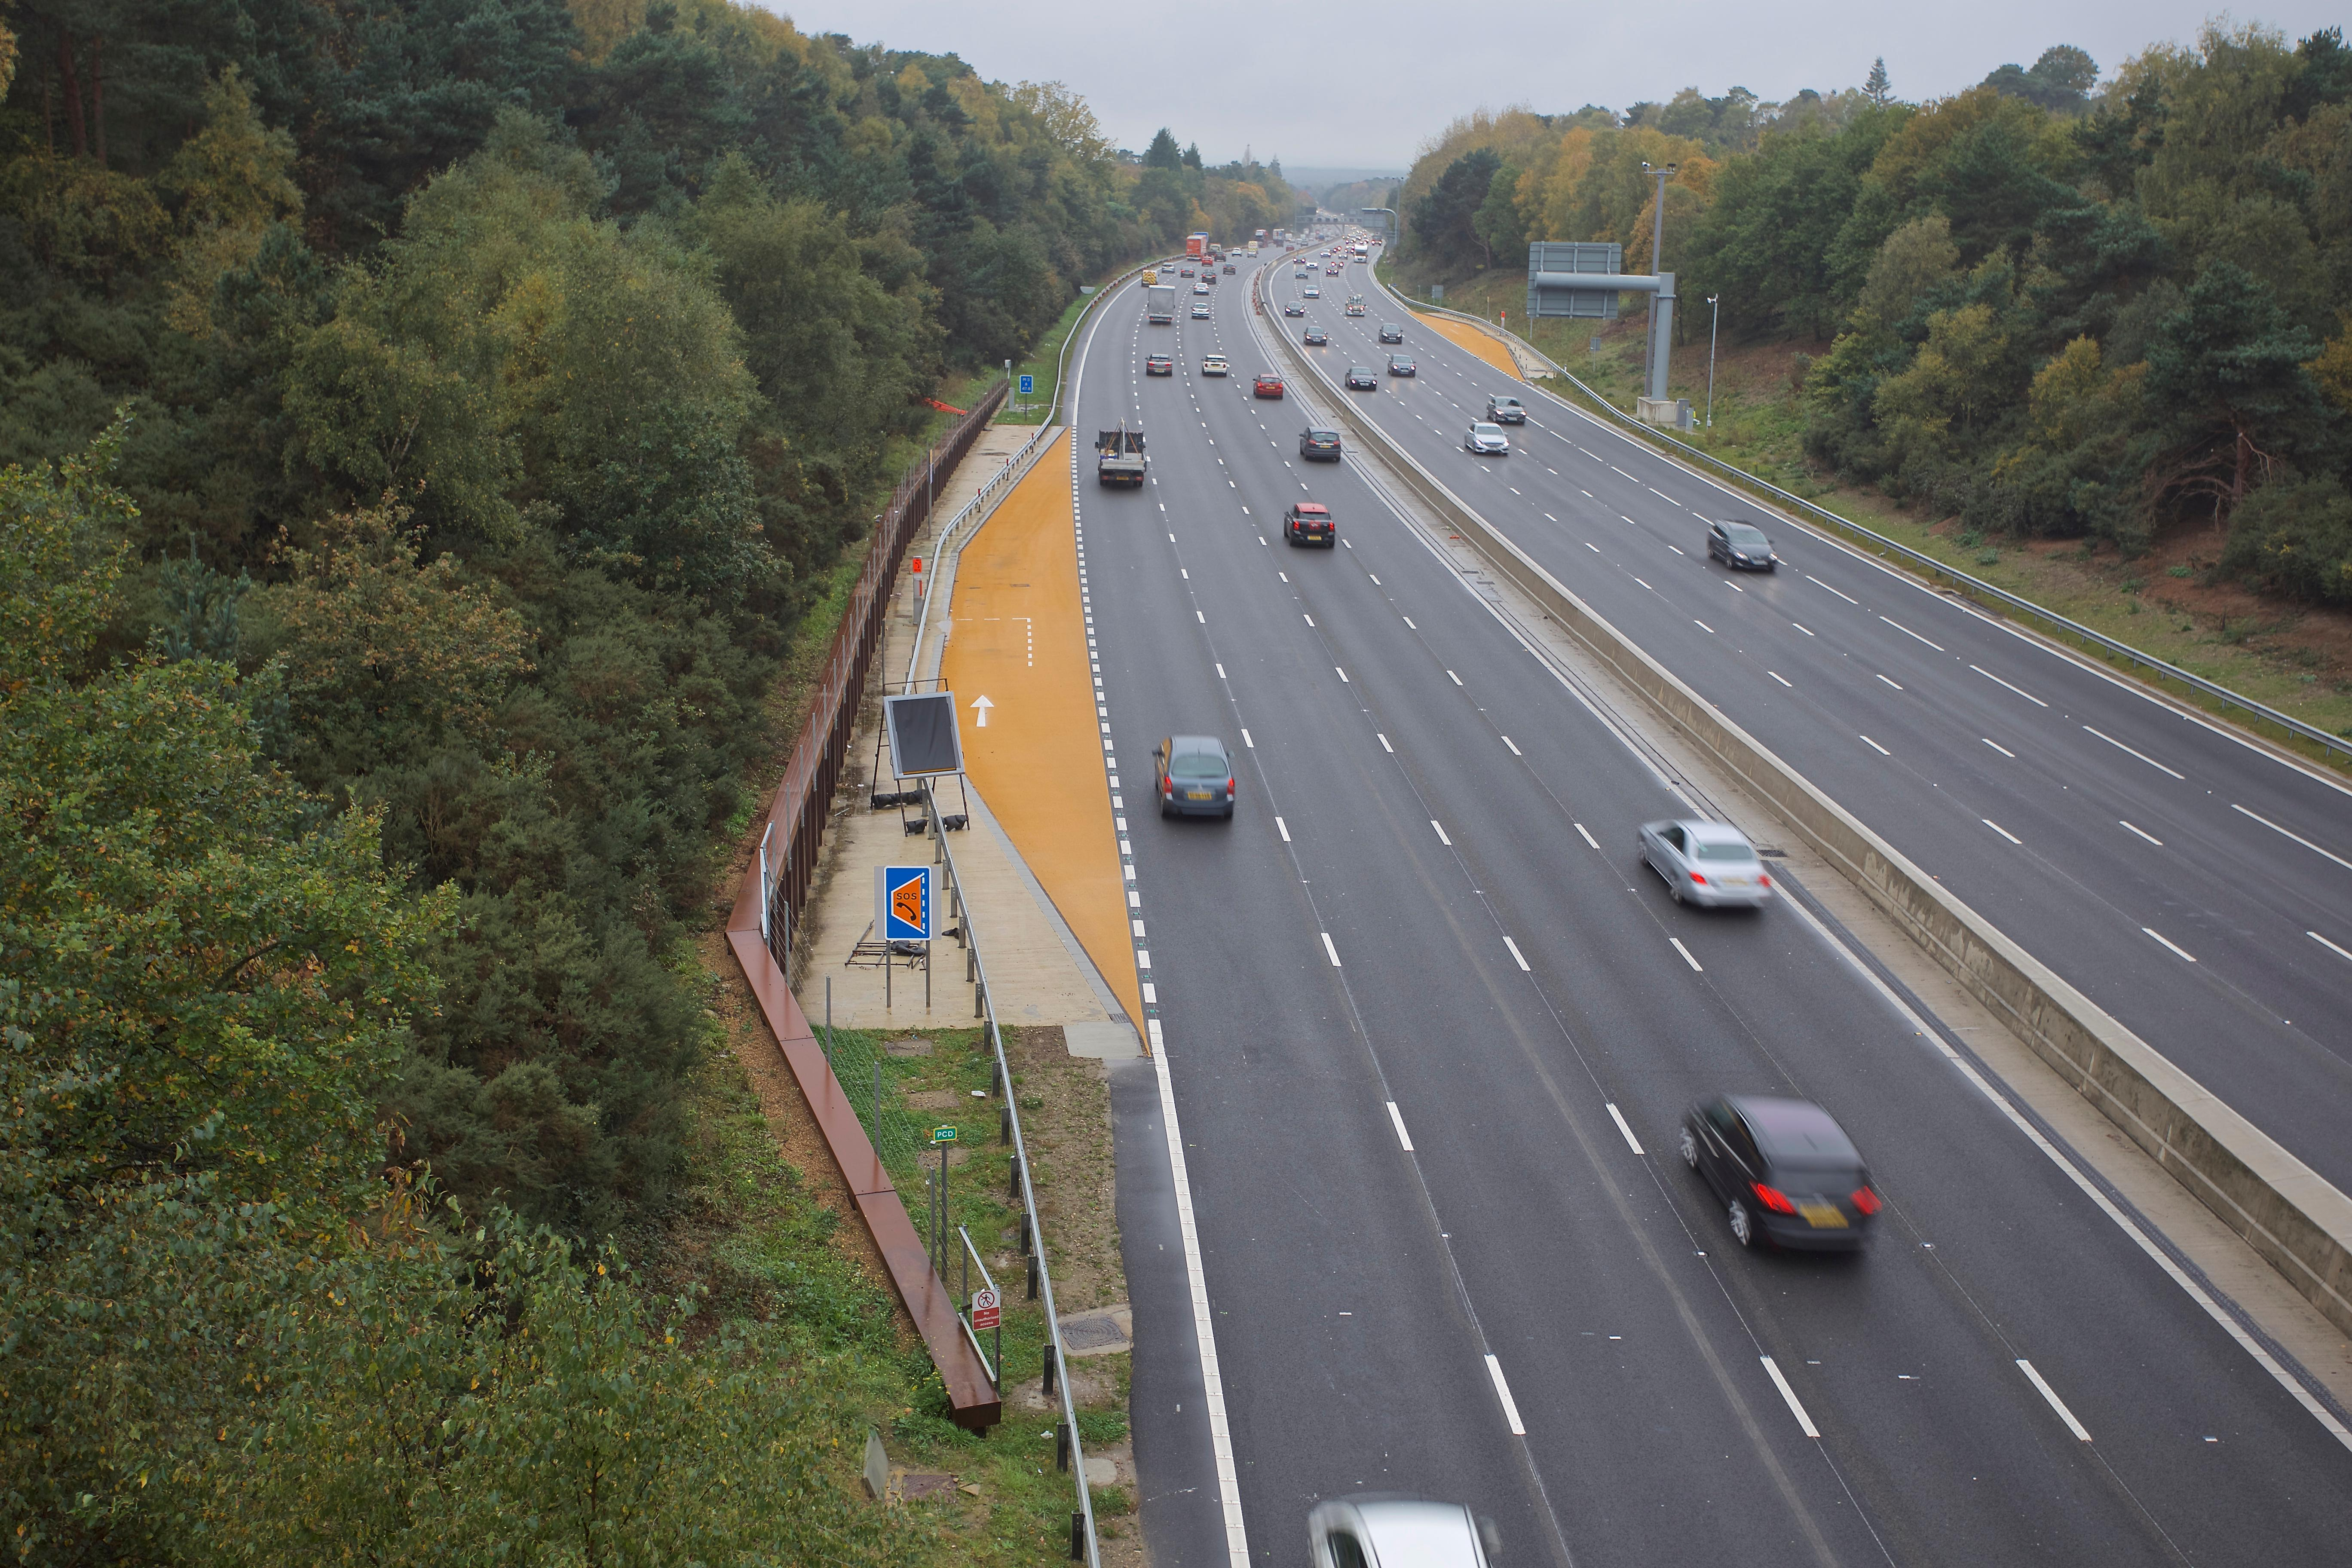 Smart motorways are where the hard shoulder is used as a regular lane